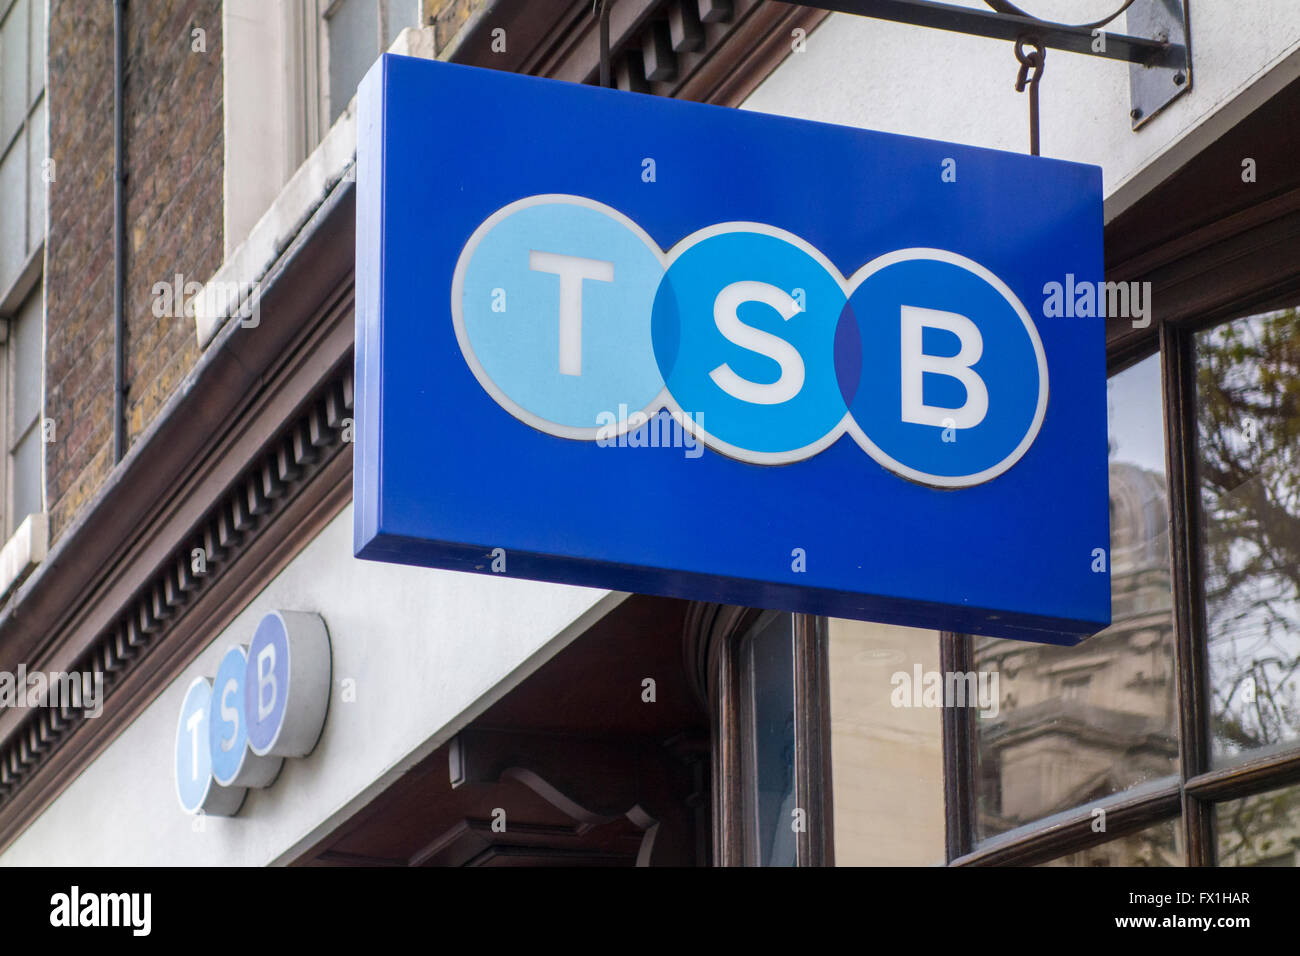 Sign outside a TSB bank branch, City of London, UK - Stock Image